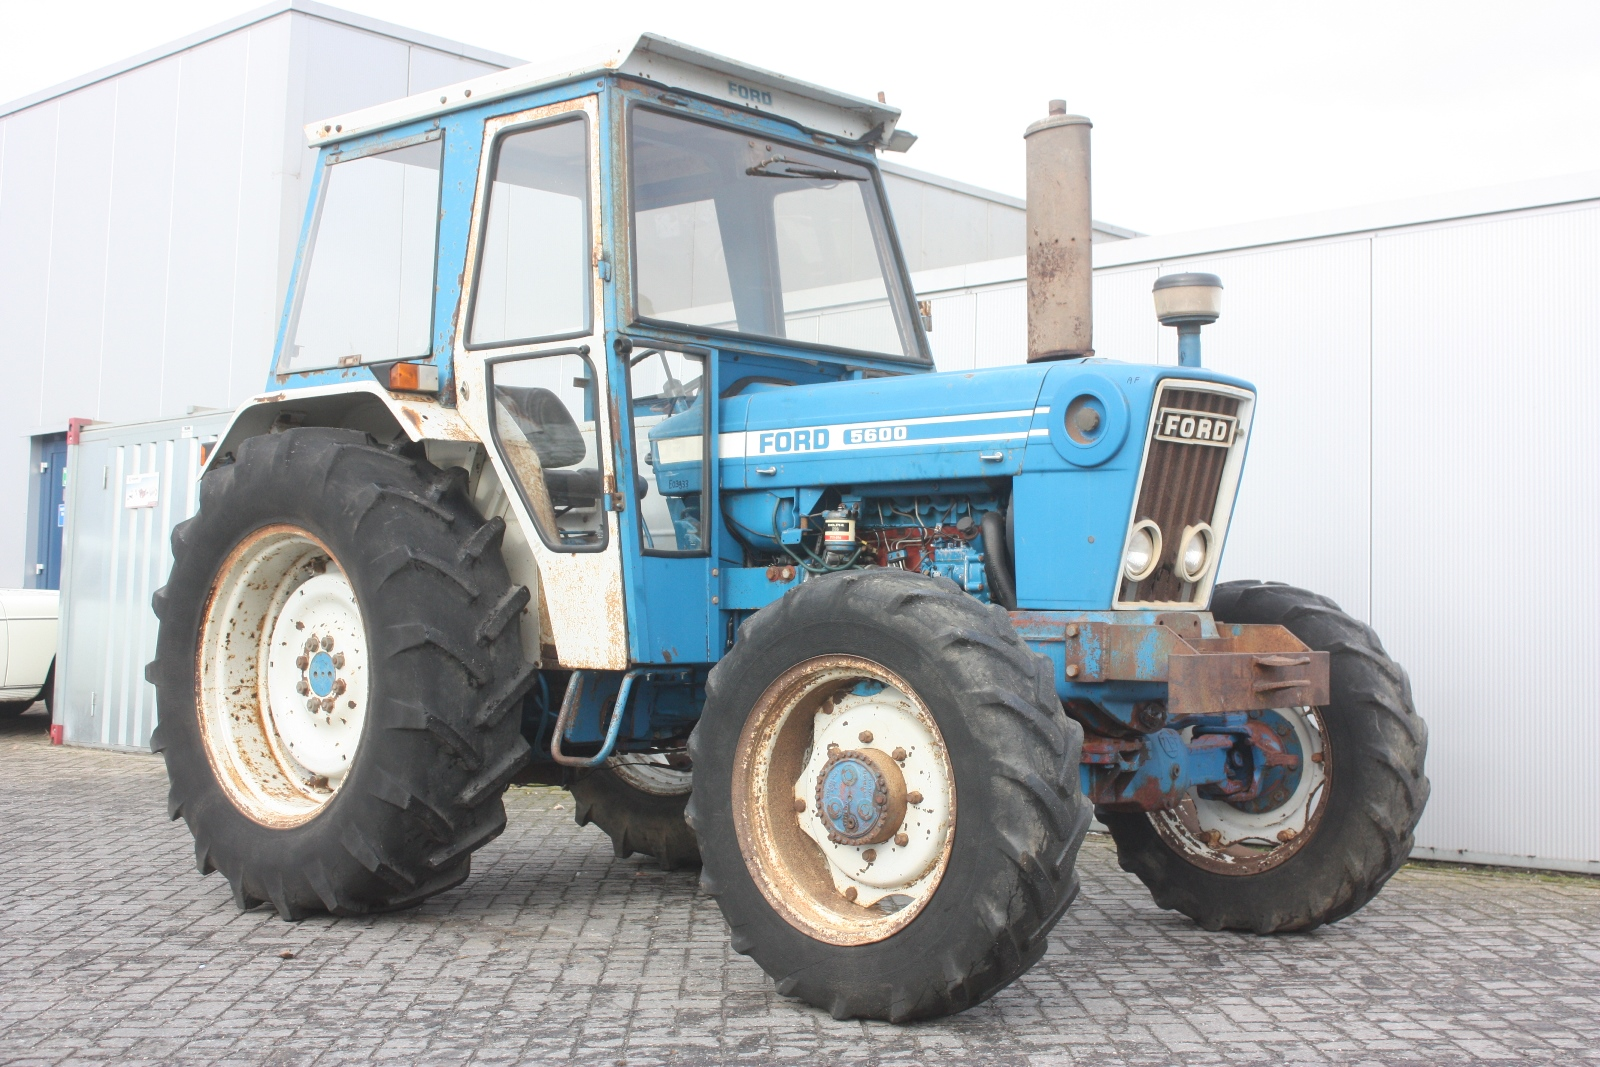 Ford Tractor 800 Series Specifications : Ford tractor specifications